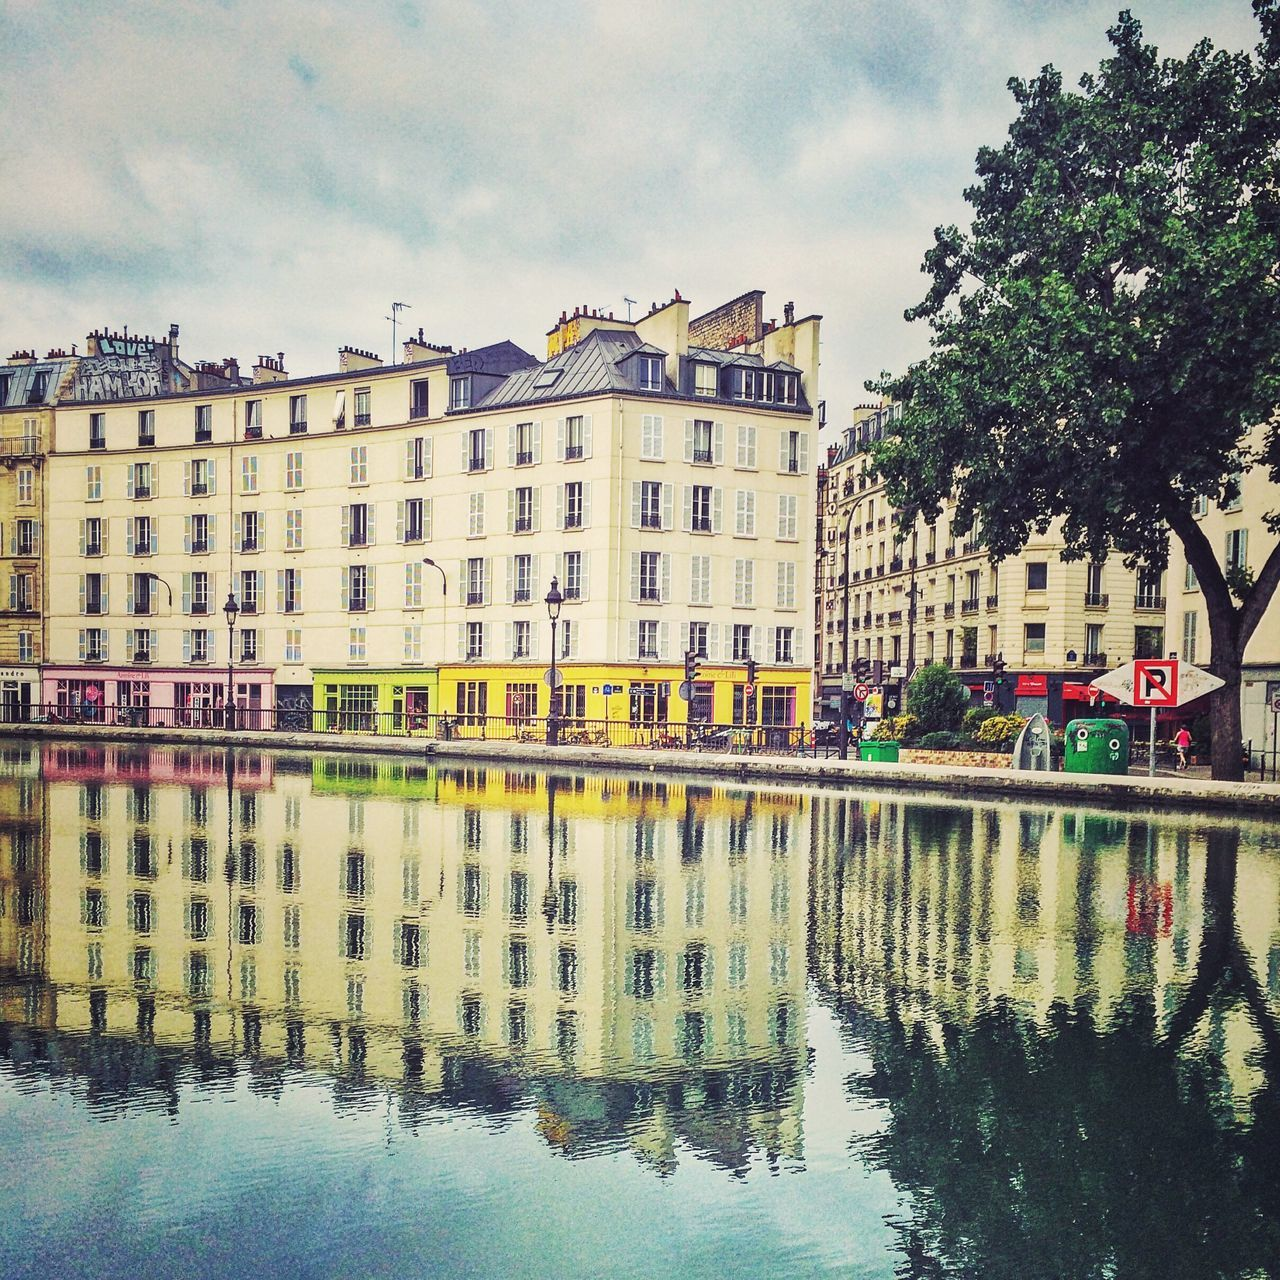 Canal saint-martin against buildings in city